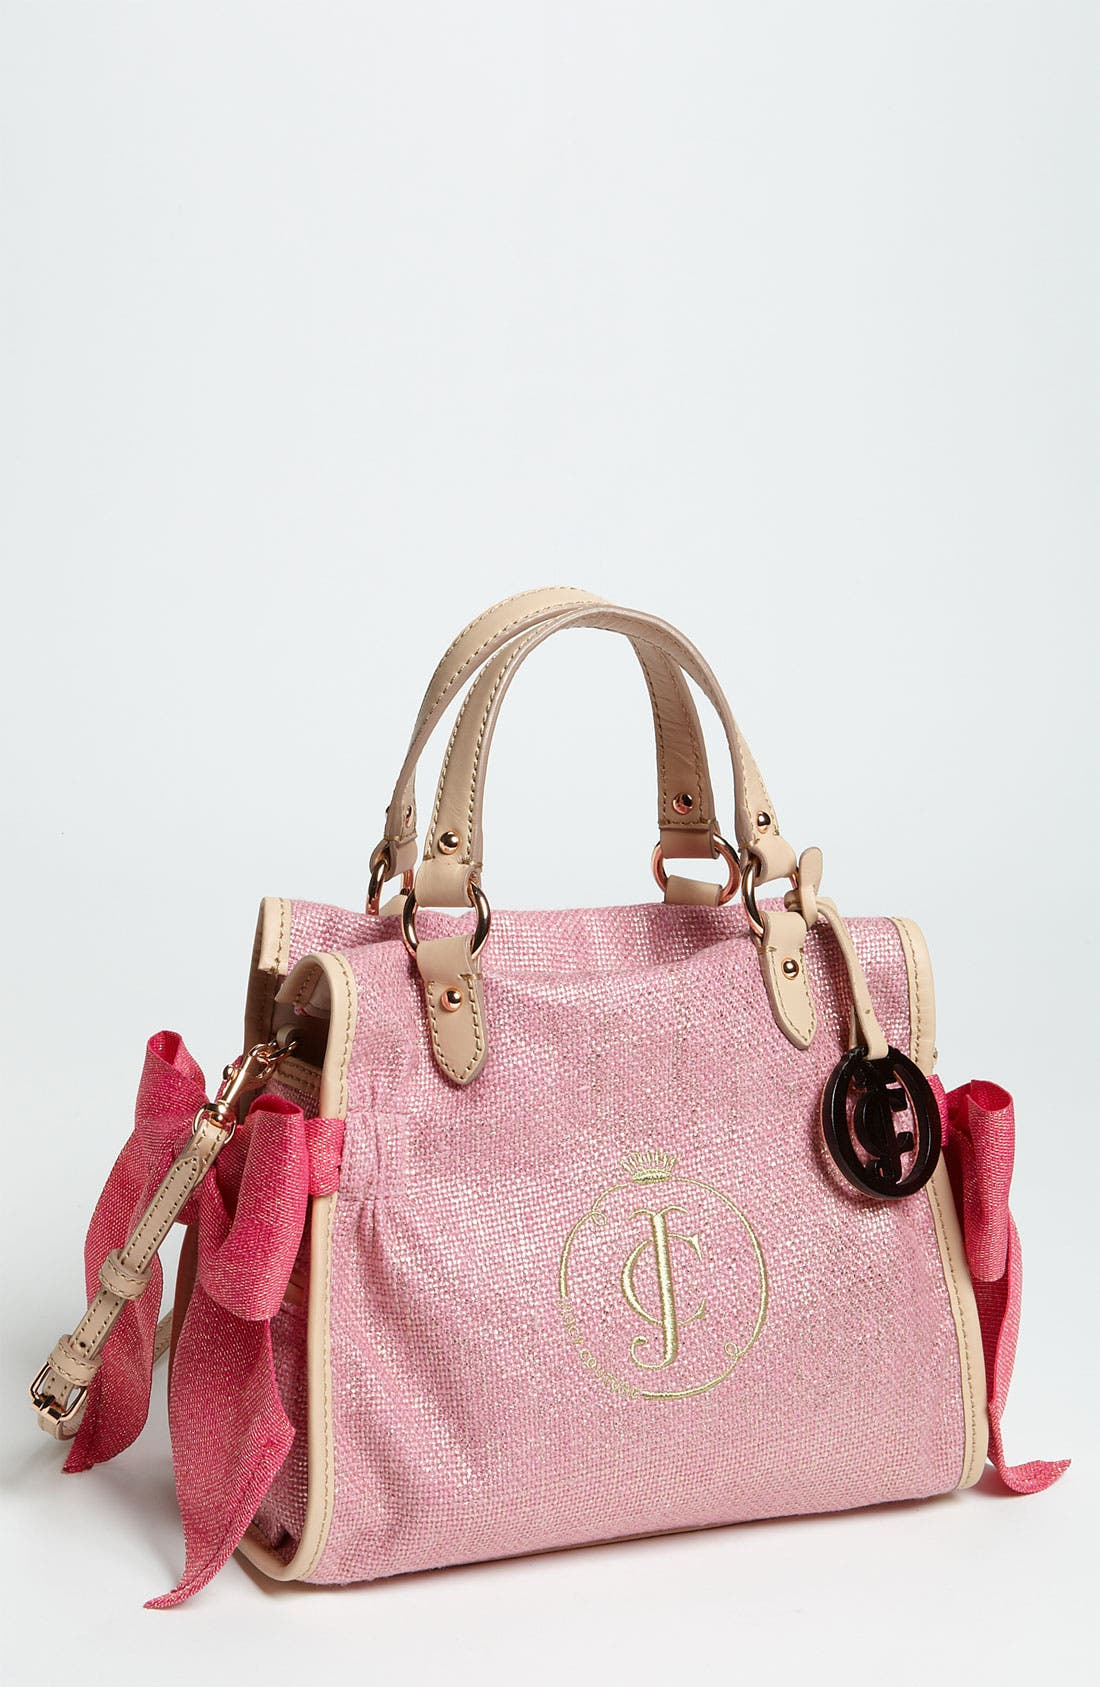 Alternate Image 1 Selected - Juicy Couture 'Miss Daydreamer' Handbag